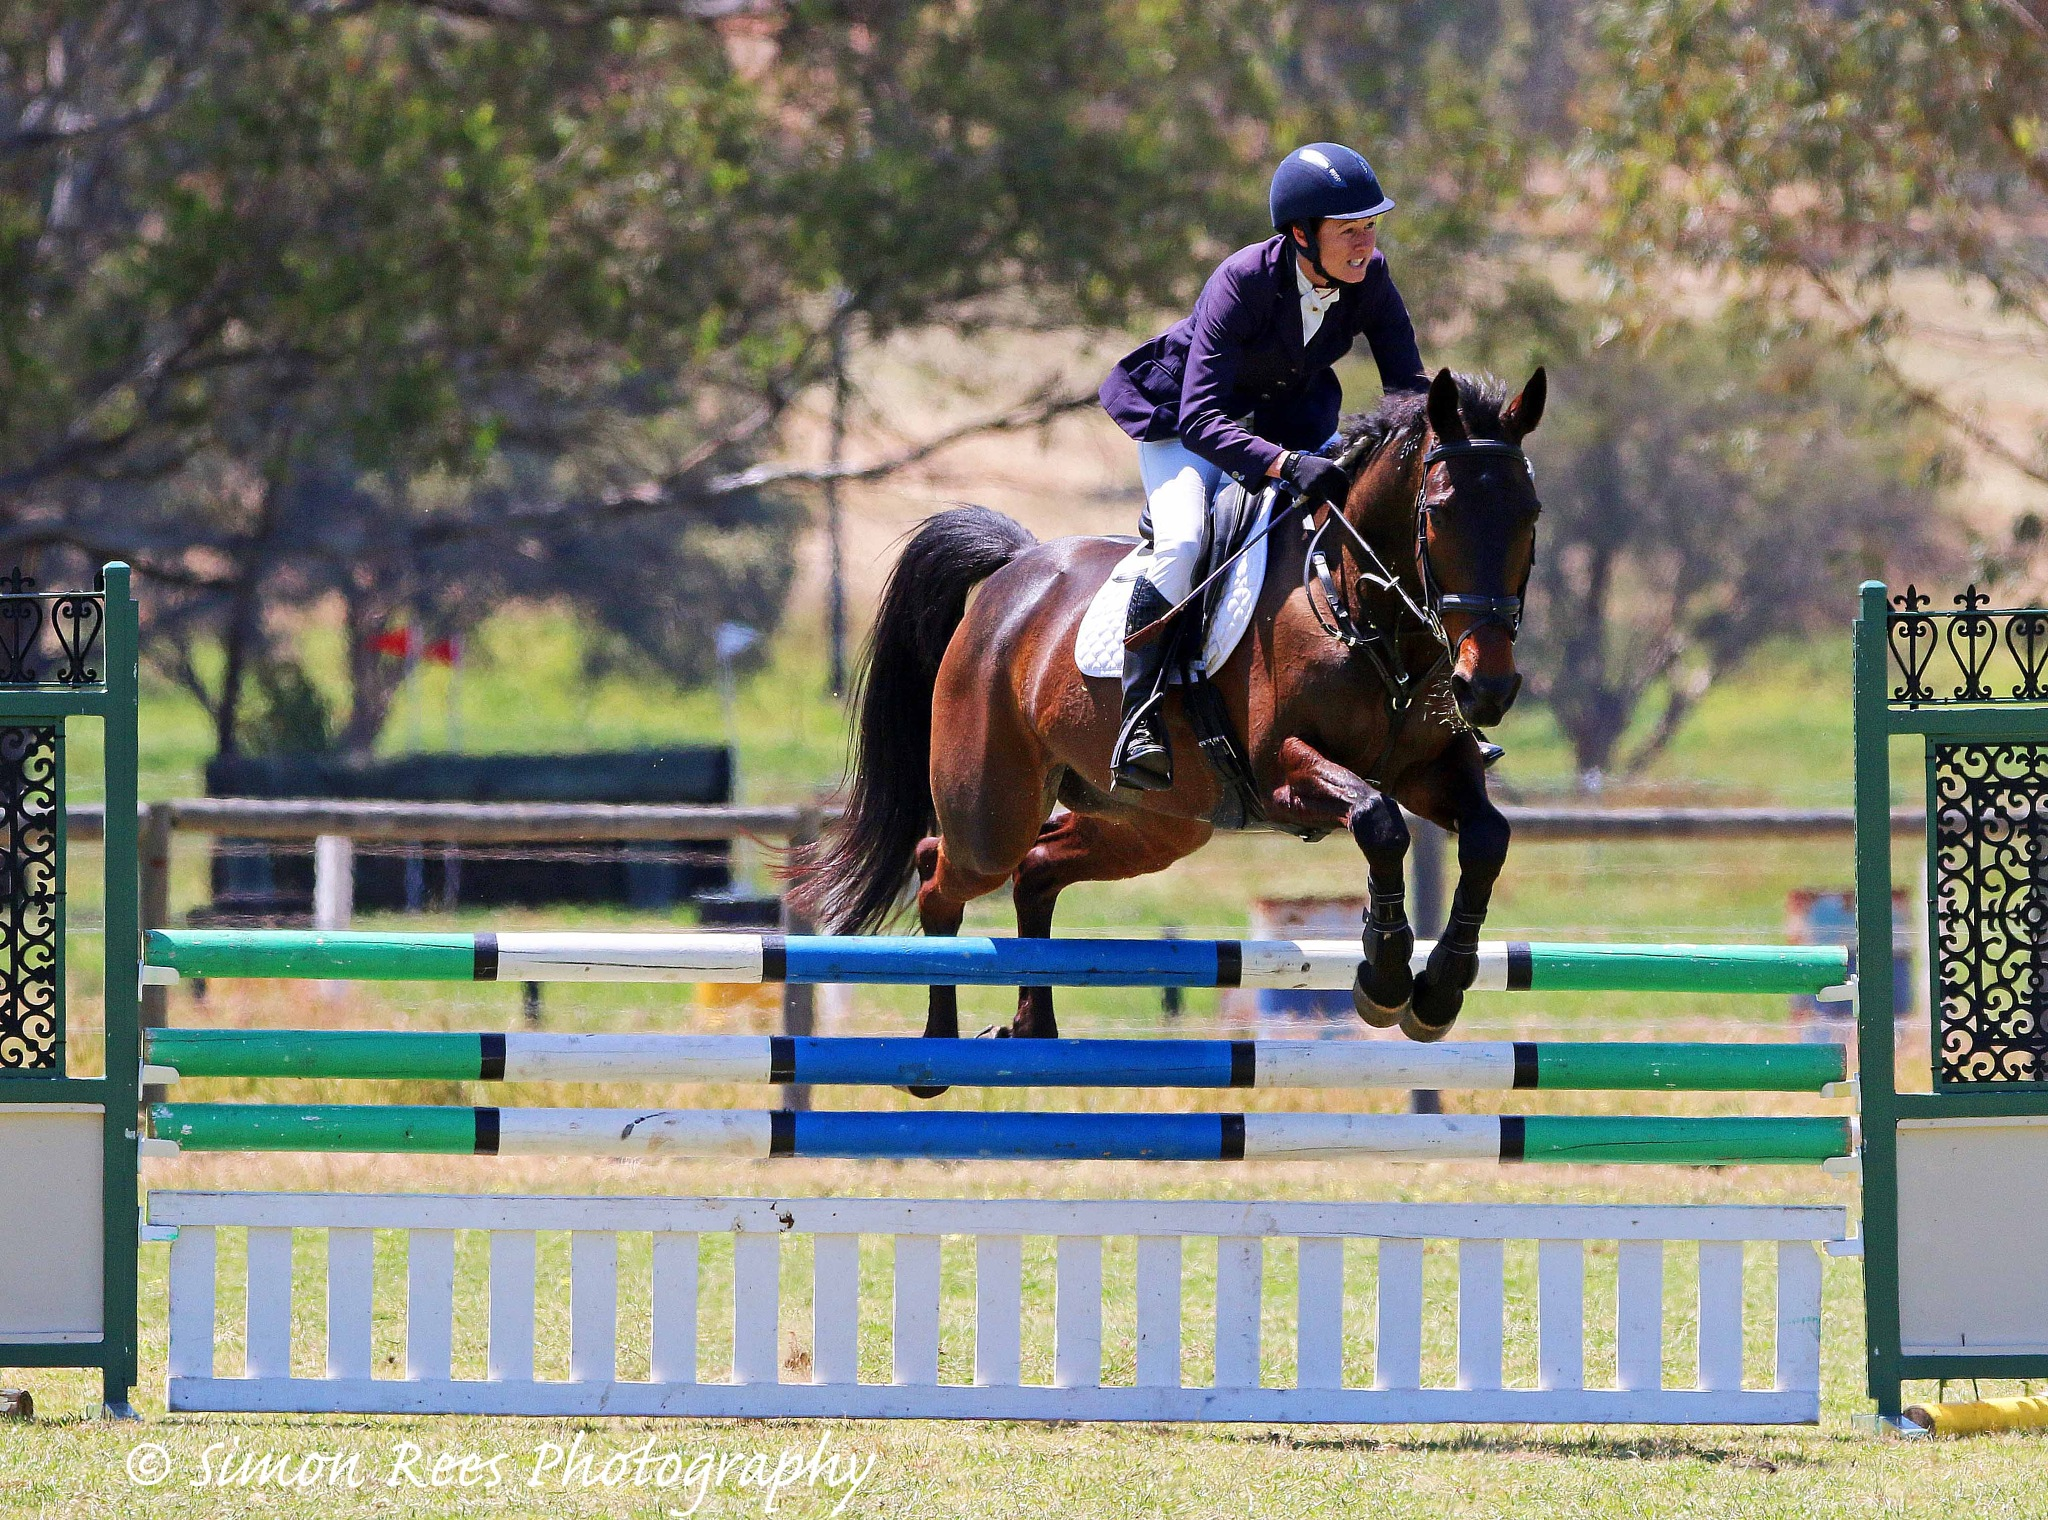 state equestrian centre by SCR1169